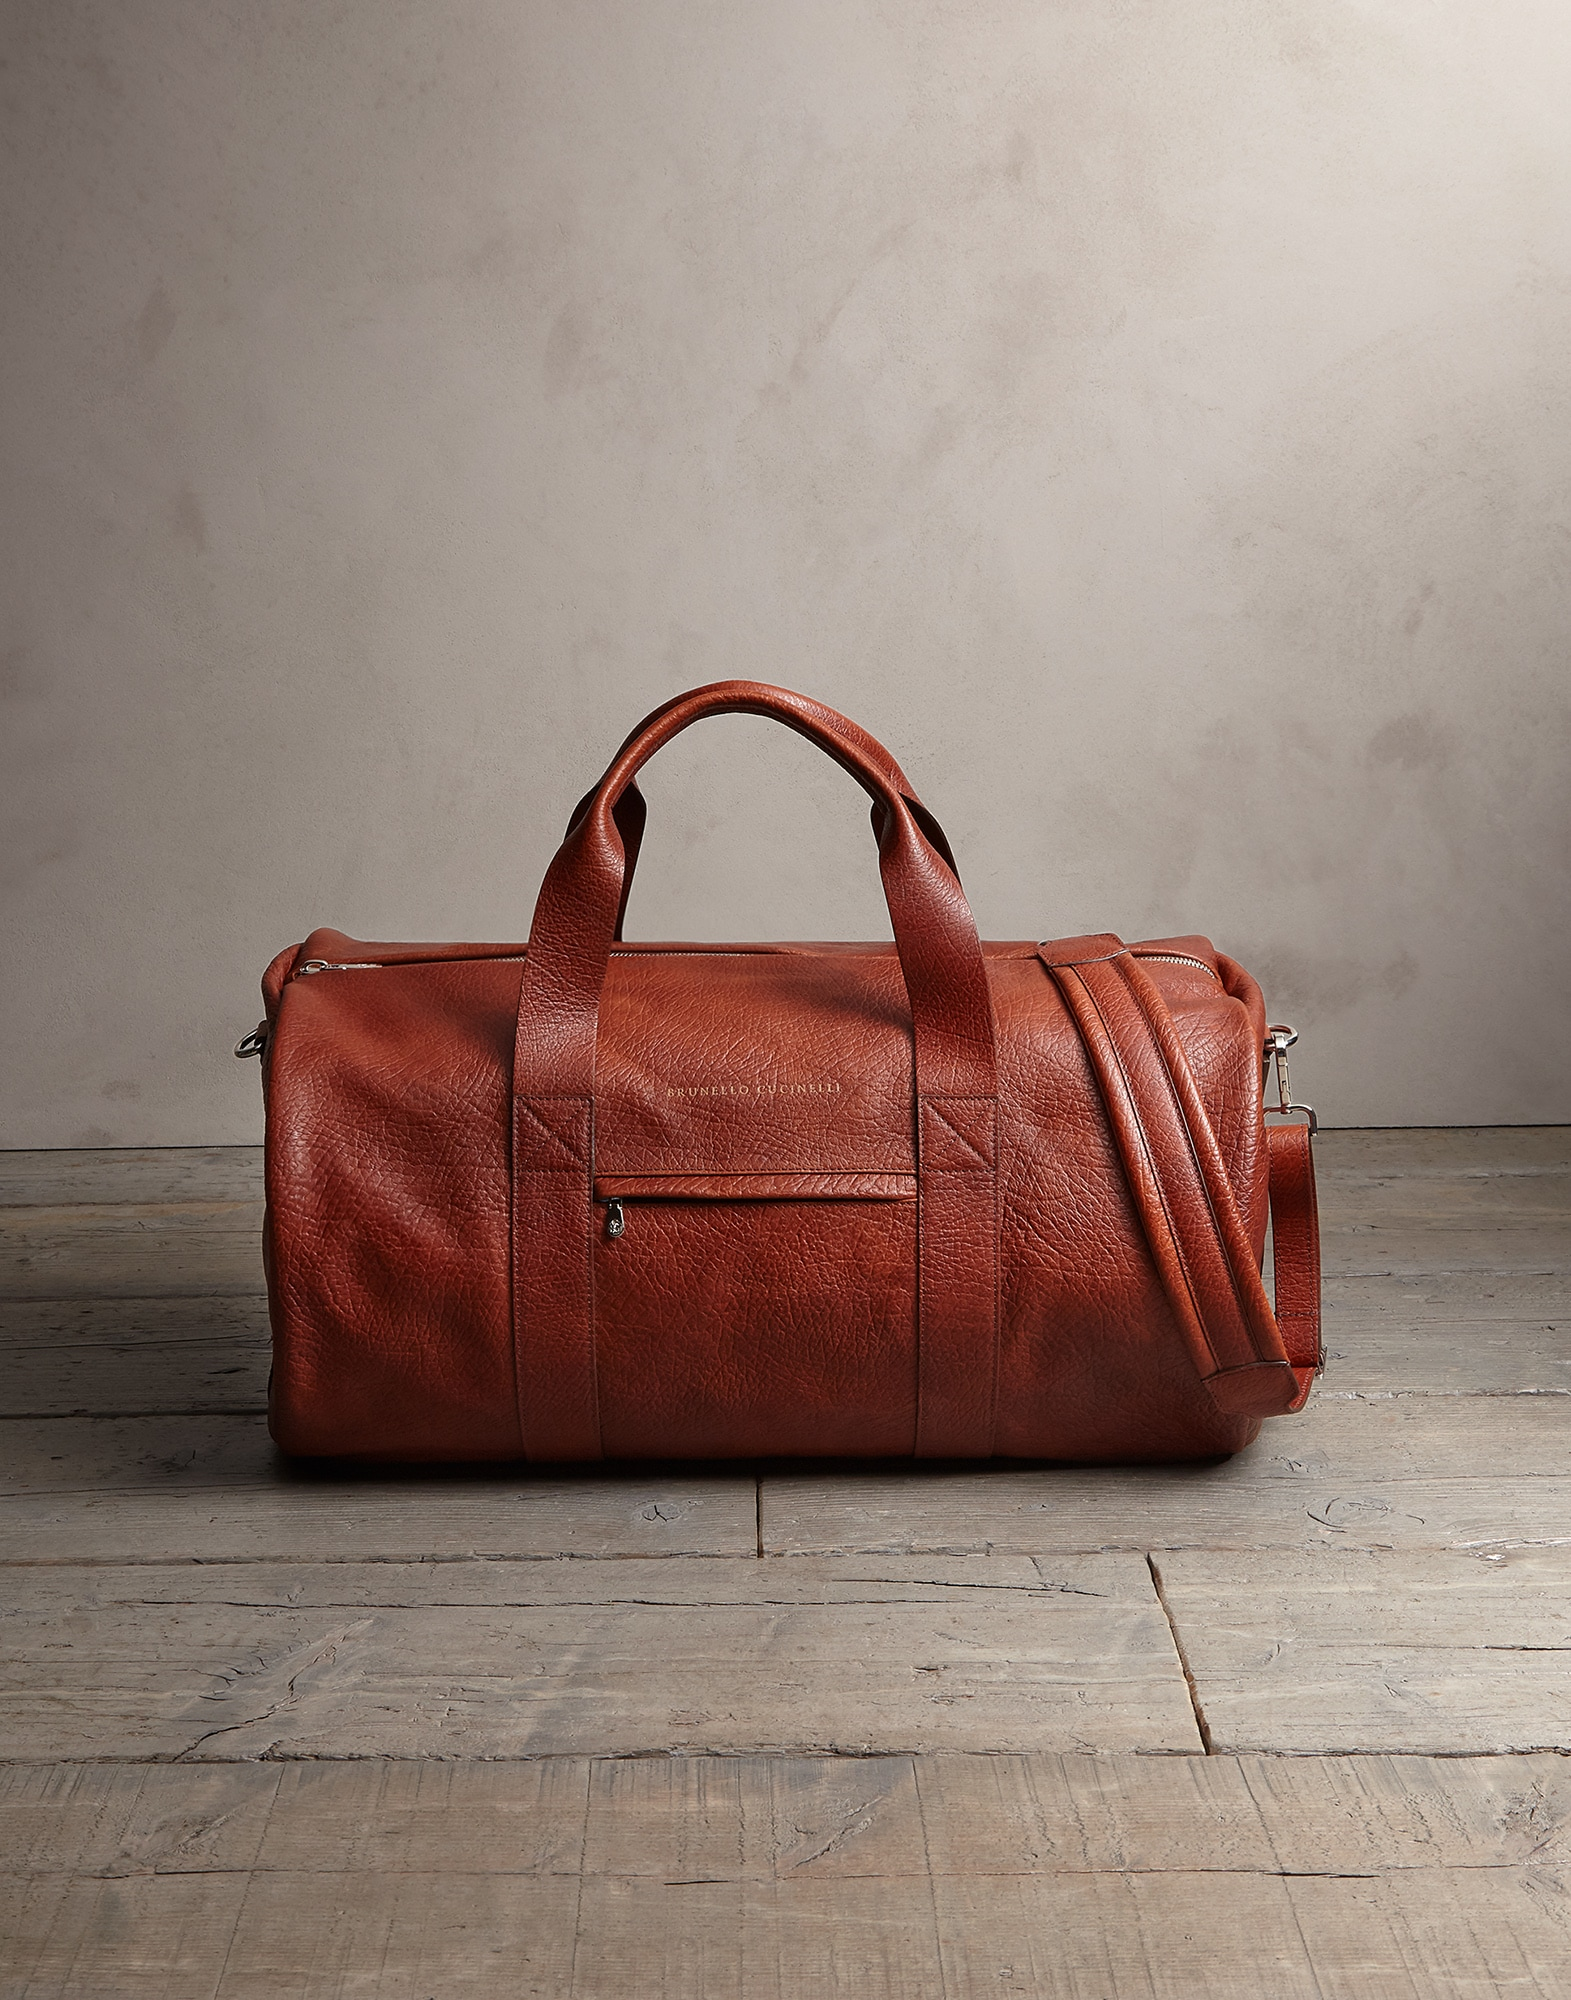 Leisure Bag Cognac Man 0 - Brunello Cucinelli